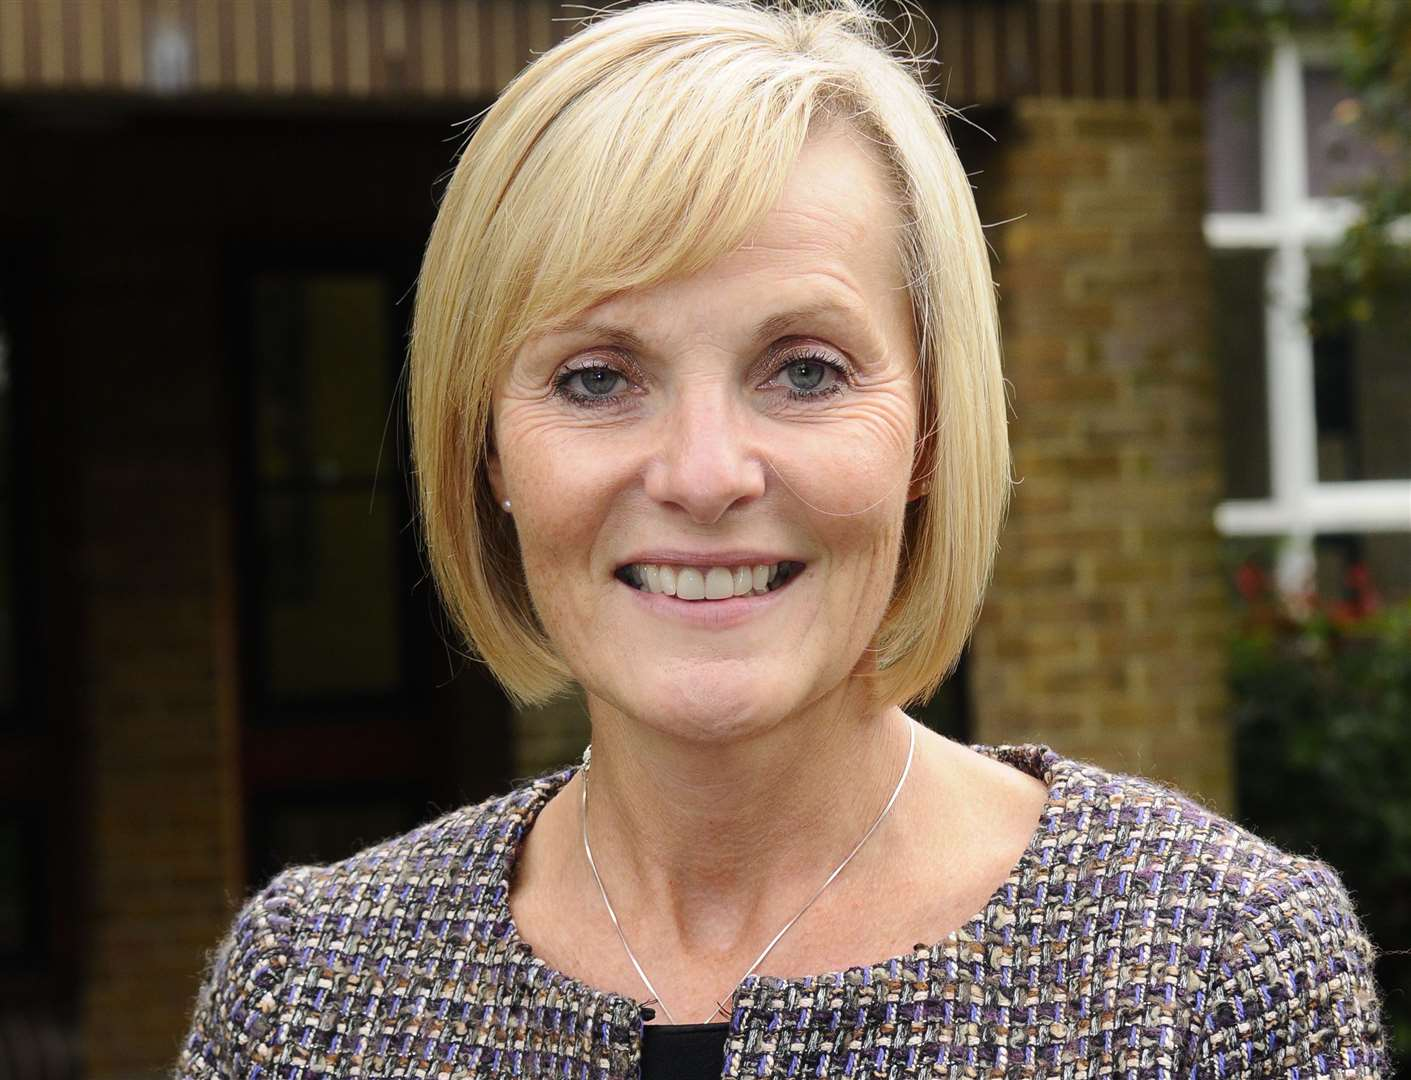 Julie Derrick, head teacher of Invicta Grammar school